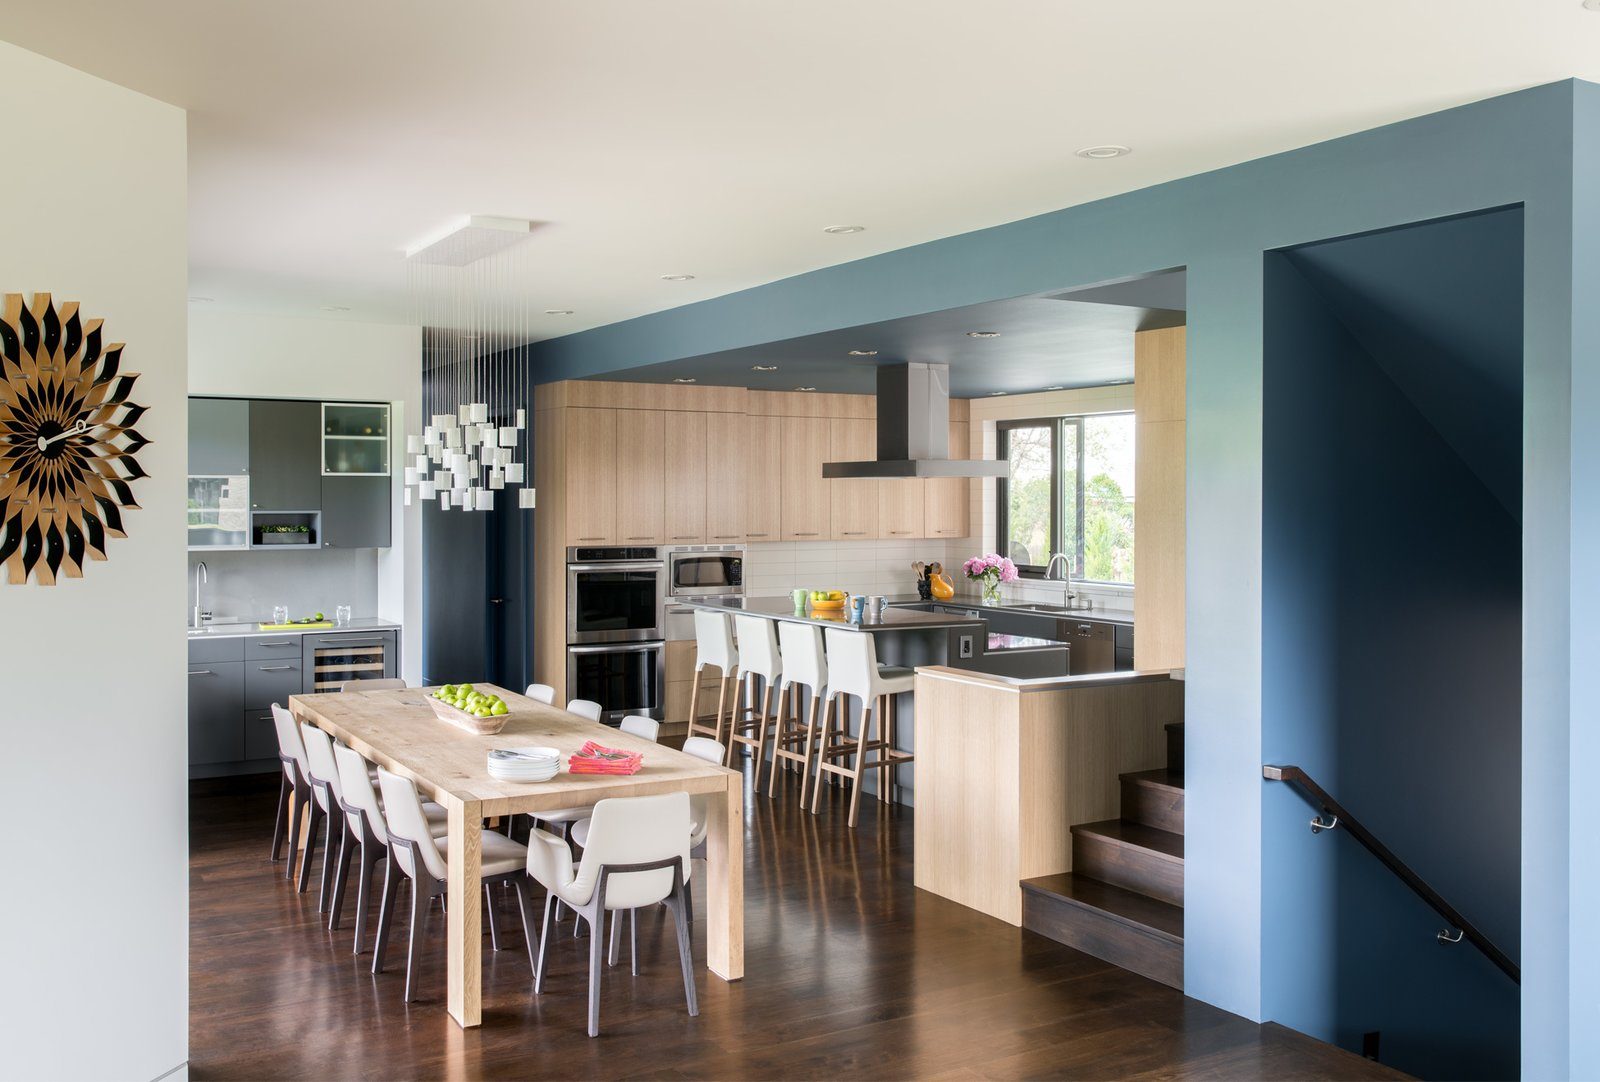 The interior palette echoes the simple use of materials with walnut floors, oak and grey cabinets. Restraint is contrasted with whimsy, however with unexpected pops of bold color throughout the home: a blue ceiling and walls wrap around the kitchen and centrally located stair articulating the service side of the home.  Sunset House by HMHAI